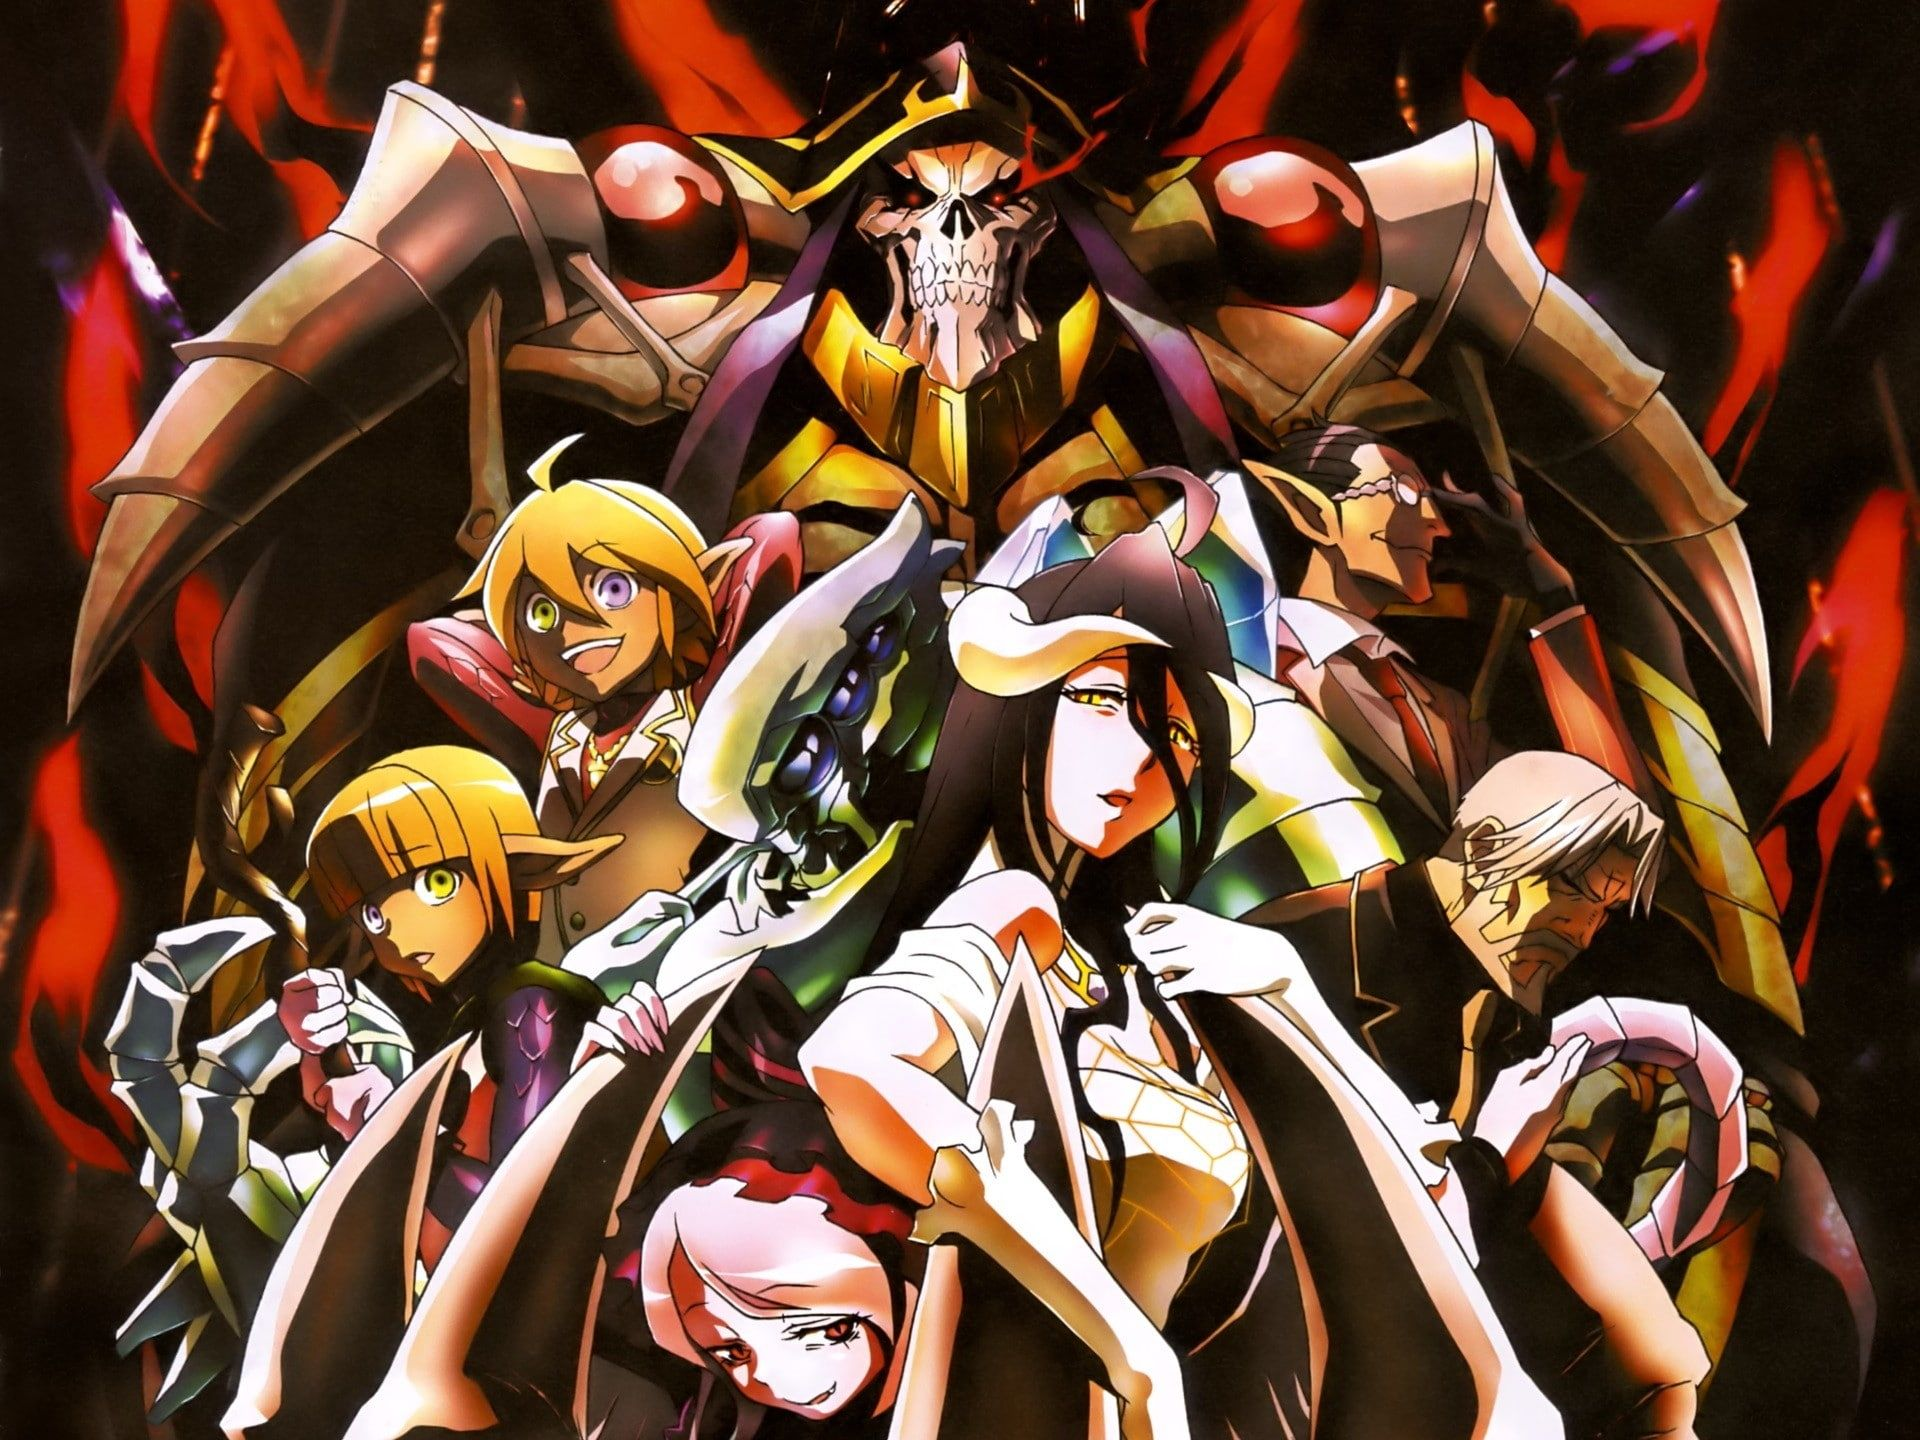 Overlord Anime Mare Bello Fiore Overlord Scanned Image Albedo Overlord Demiurge Overlord Ainz Ooal Gown Sebas Ti Anime Anime Images Character Wallpaper 10 overlord anime wallpaper